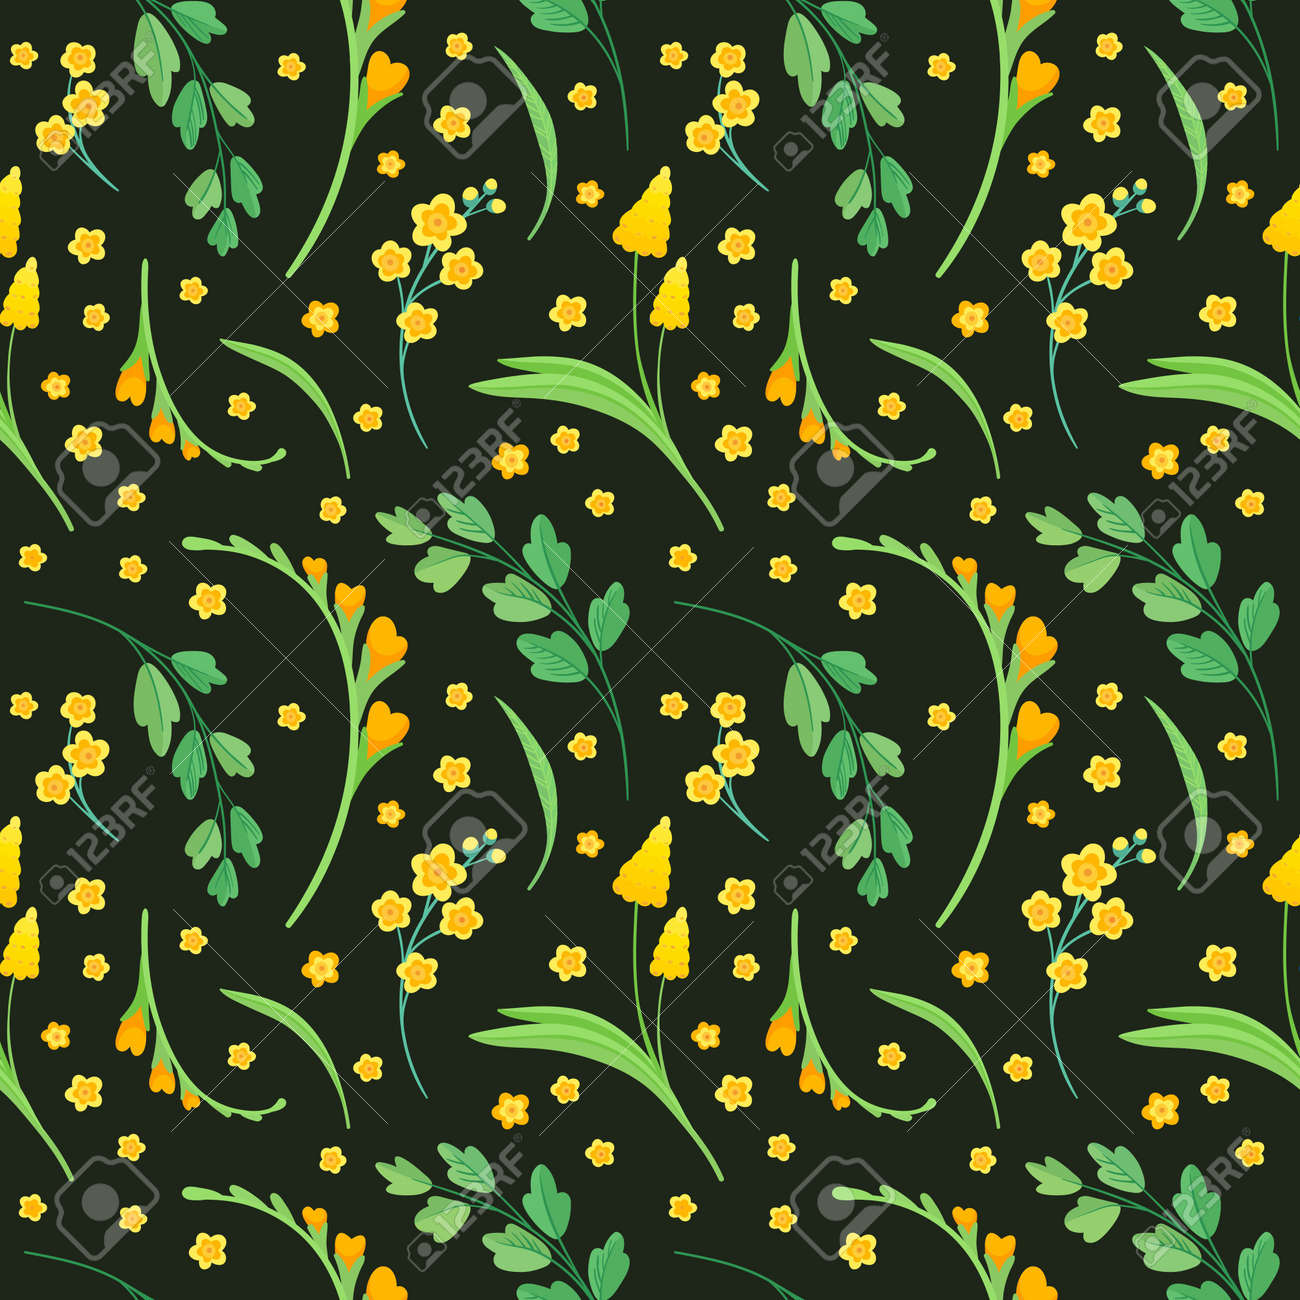 Yellow flowers and leaves seamless pattern. Blossoms floral decorative backdrop. Blooming spring plants. Vintage textile, fabric, wallpaper design on a dark background - 172490652